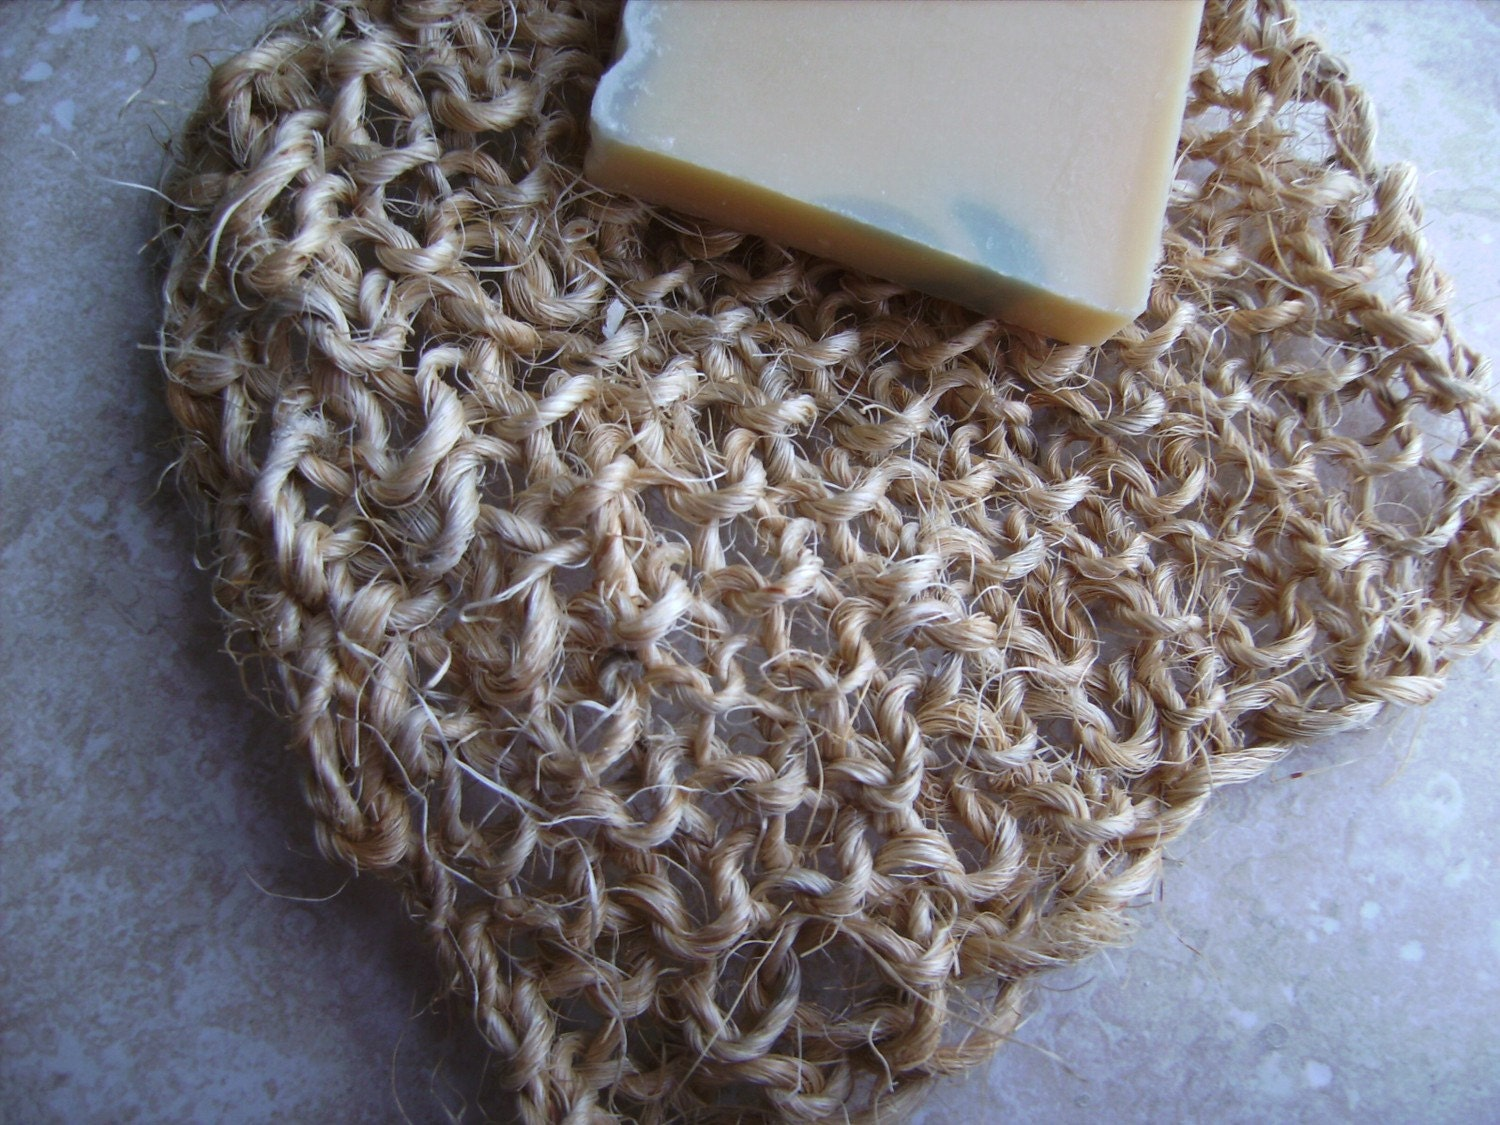 Organic Hand Knit Exfoliating Sisal Bath or Shower Scrub Massage Washcloth Pad